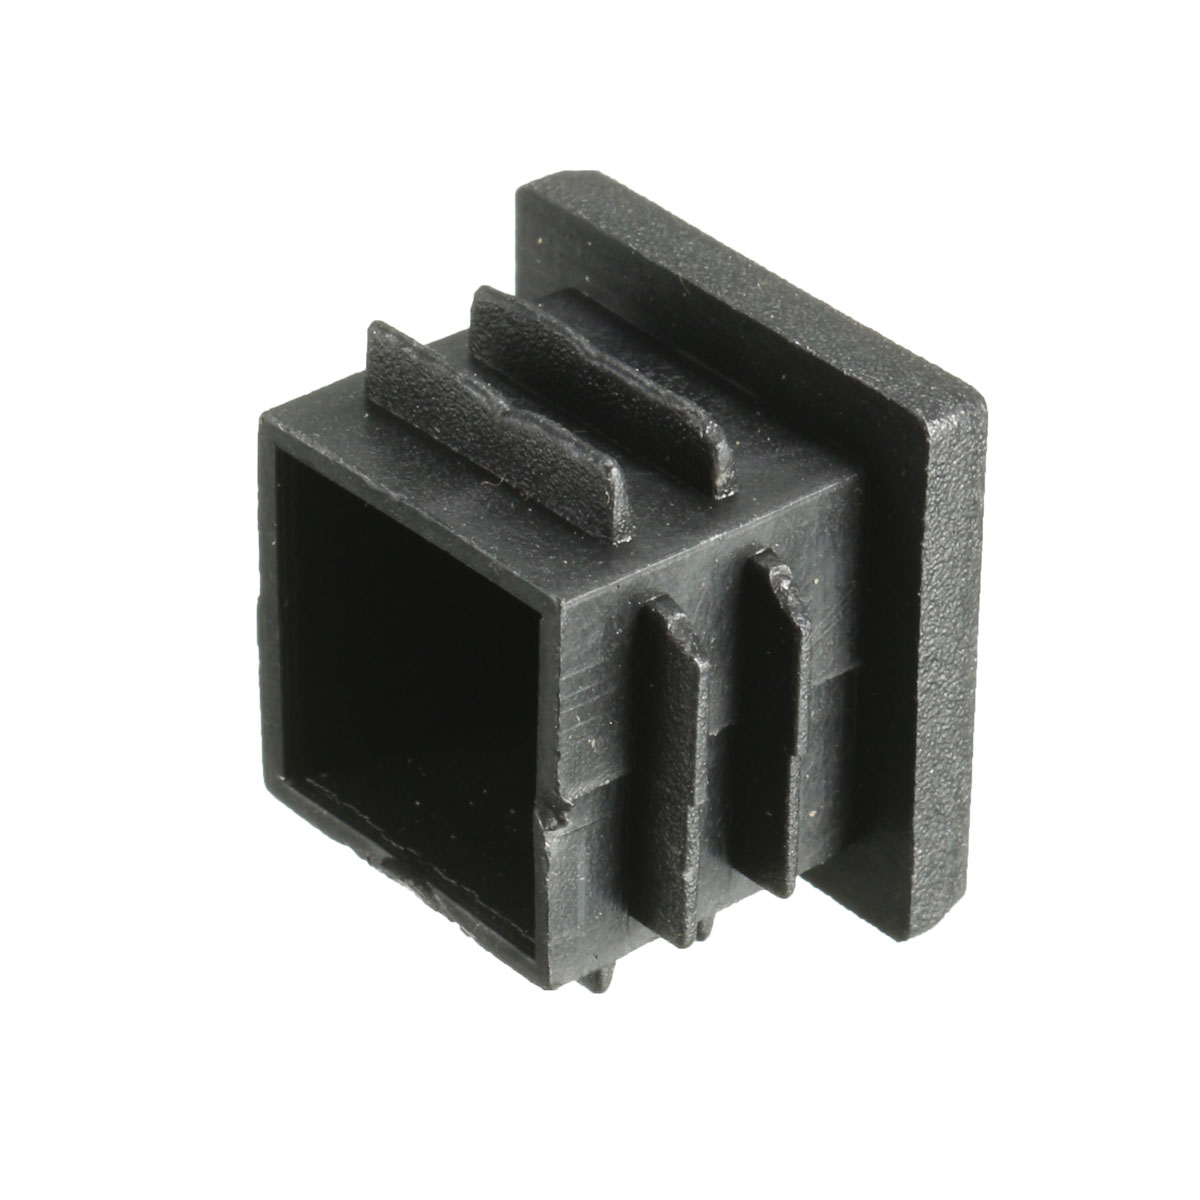 Plastic black blanking end cap square inserts plug cover